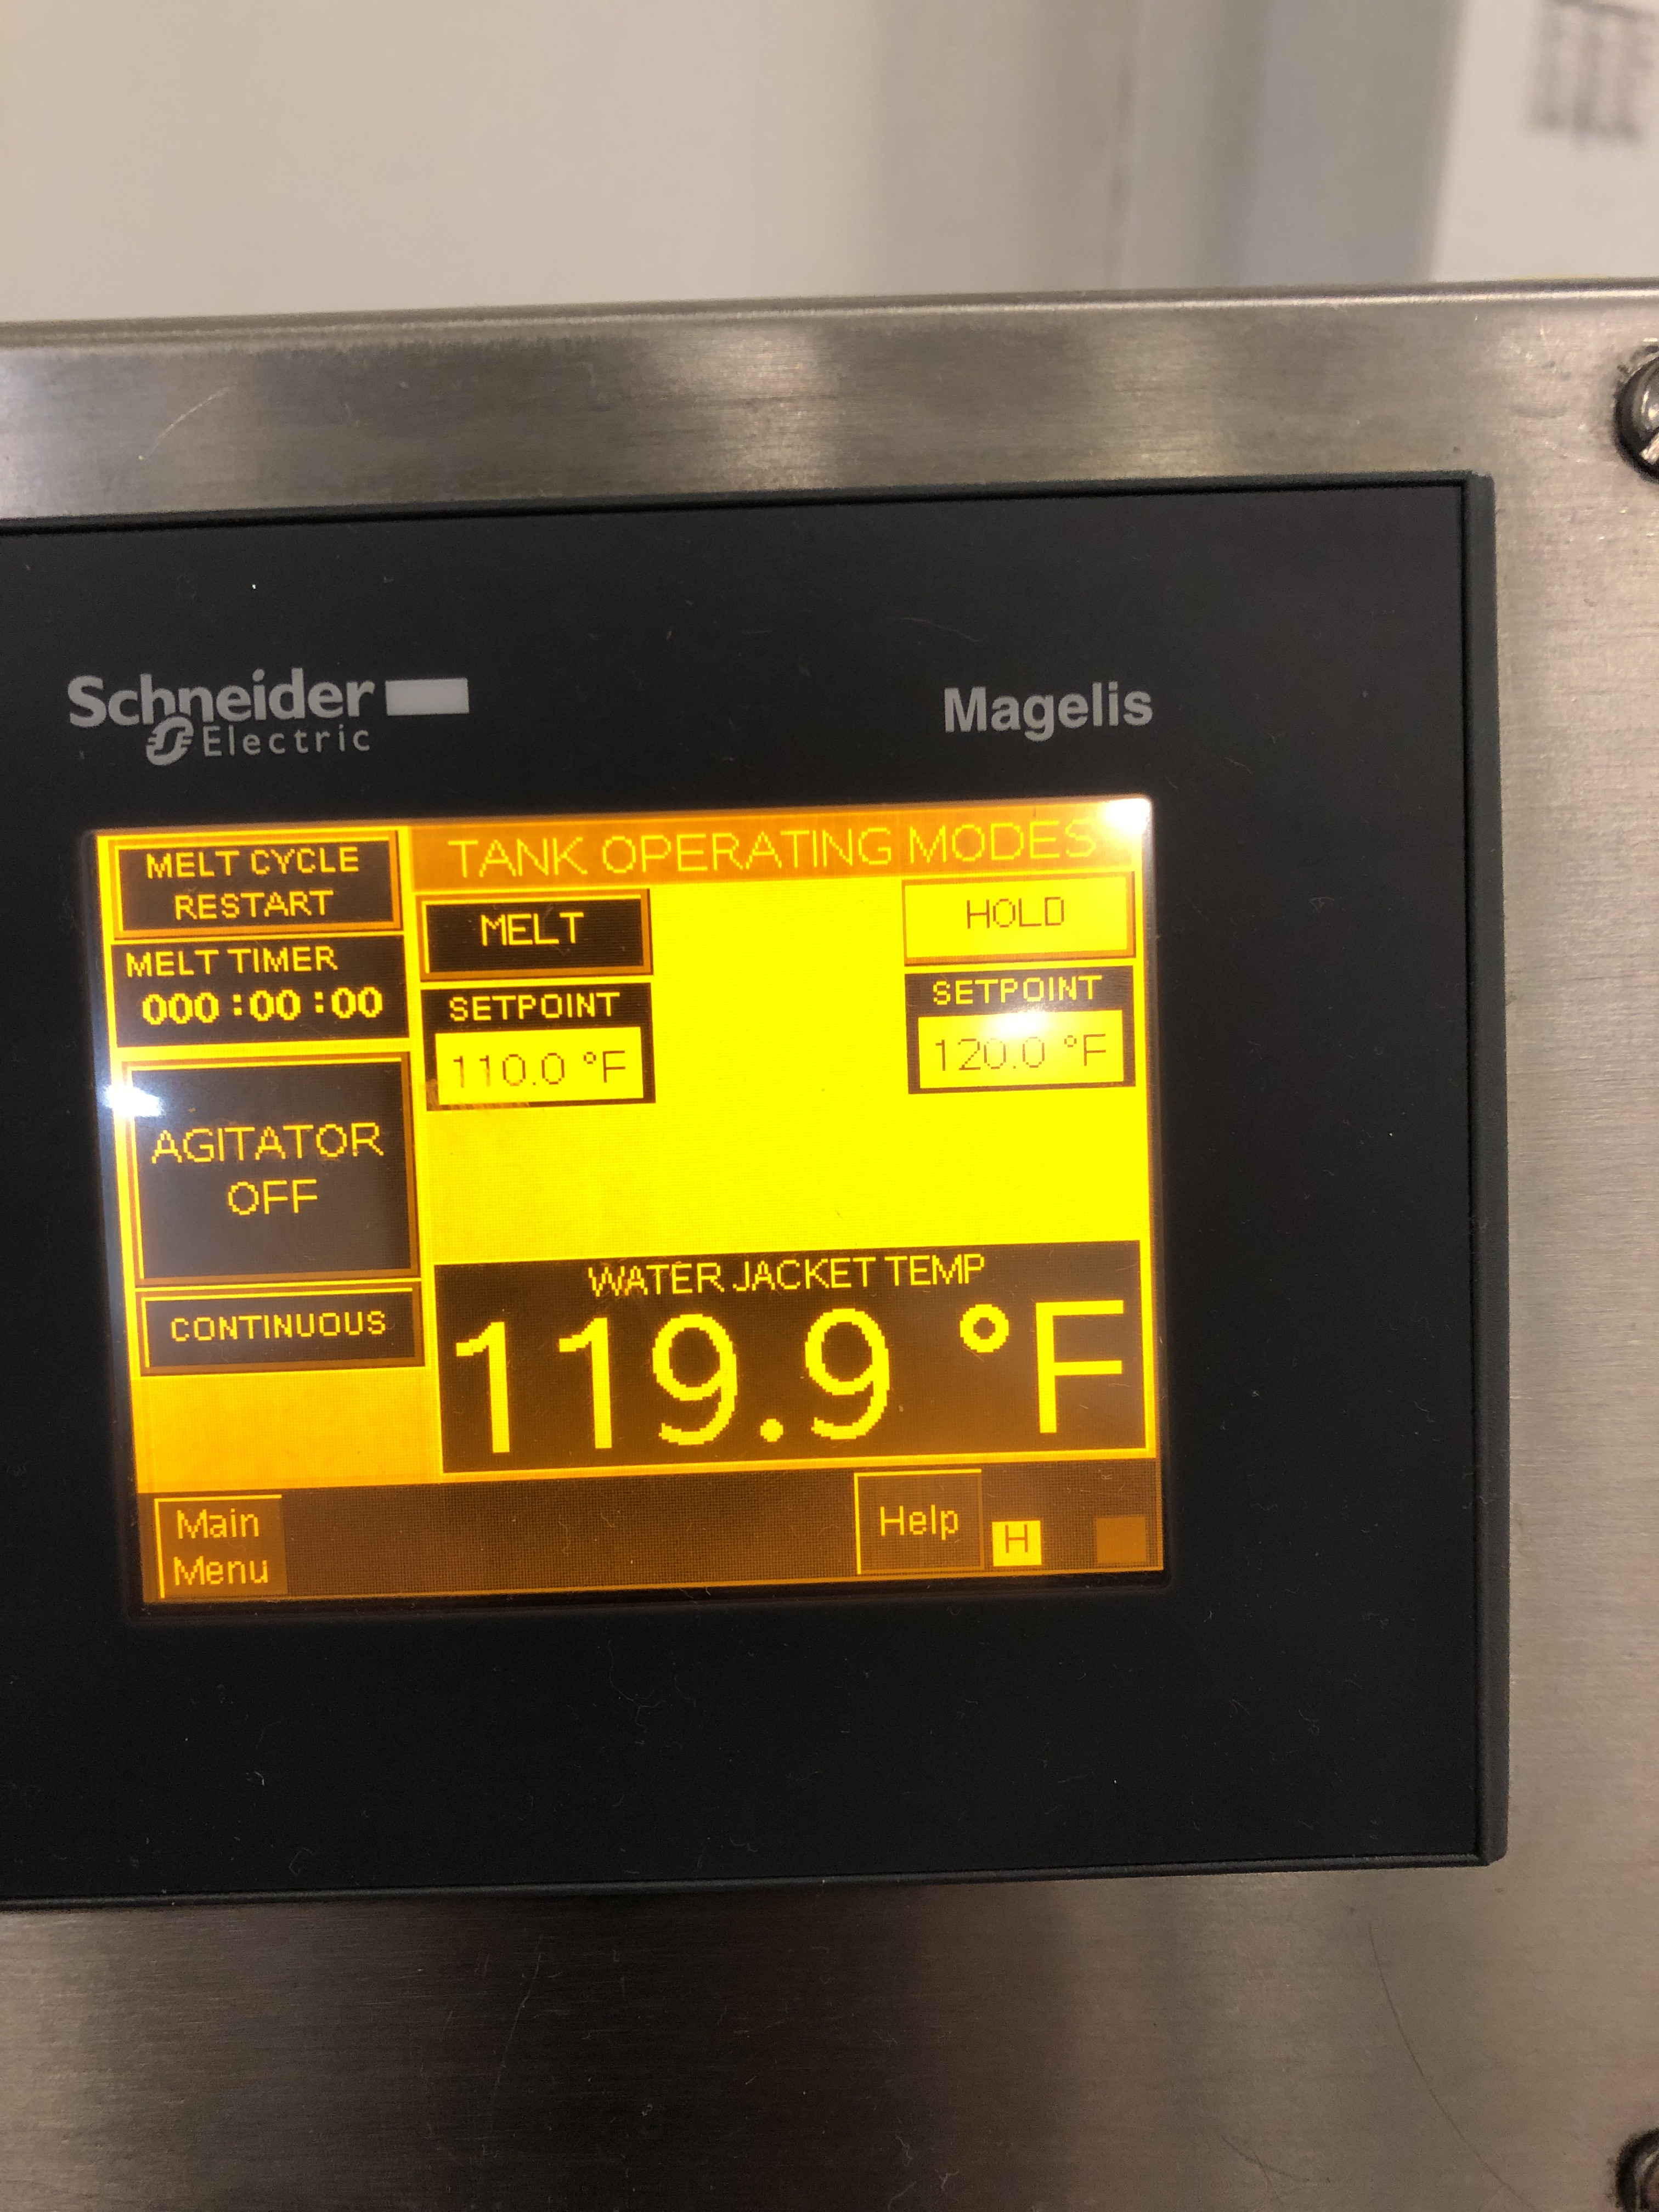 Lot 27 - Savage 50-lb Stainless Steel Chocolate Melter, model 0934-40, jacketed and agitated, electrically